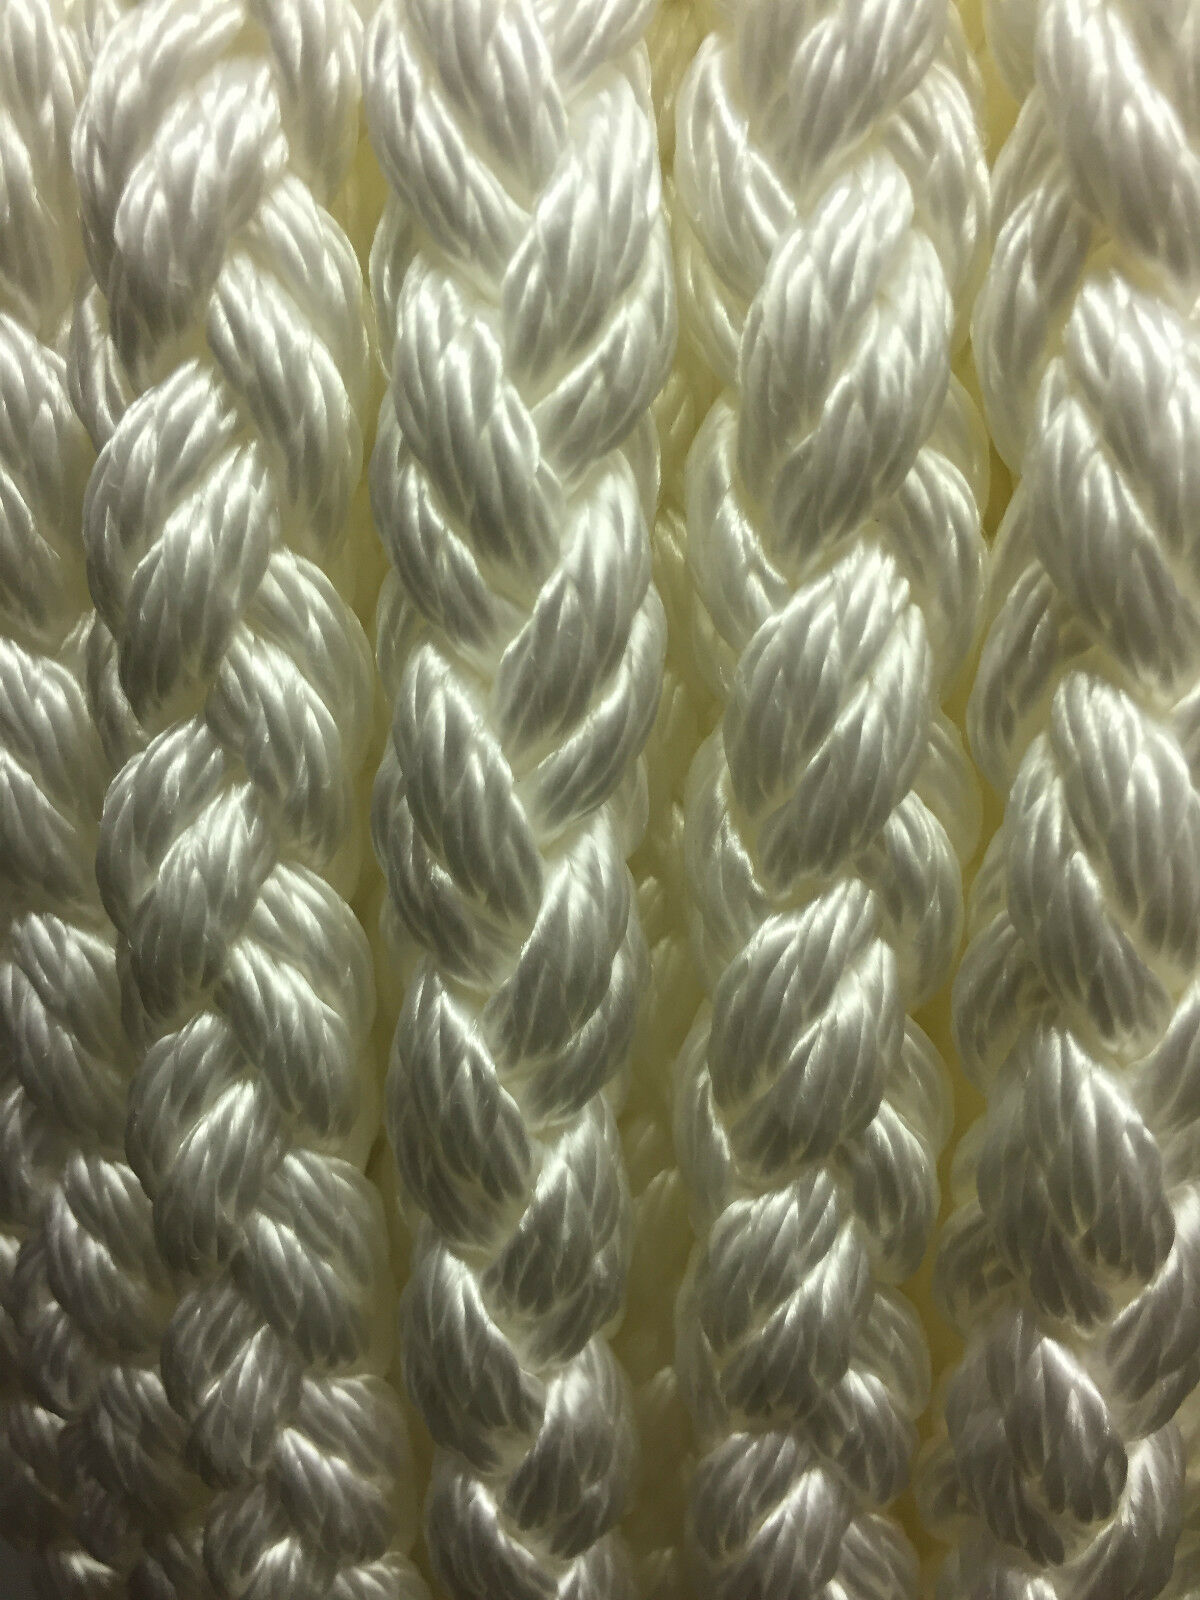 Anchor Mooring rope 8plait multiplait octoplait polyester Marine boat yacht rope